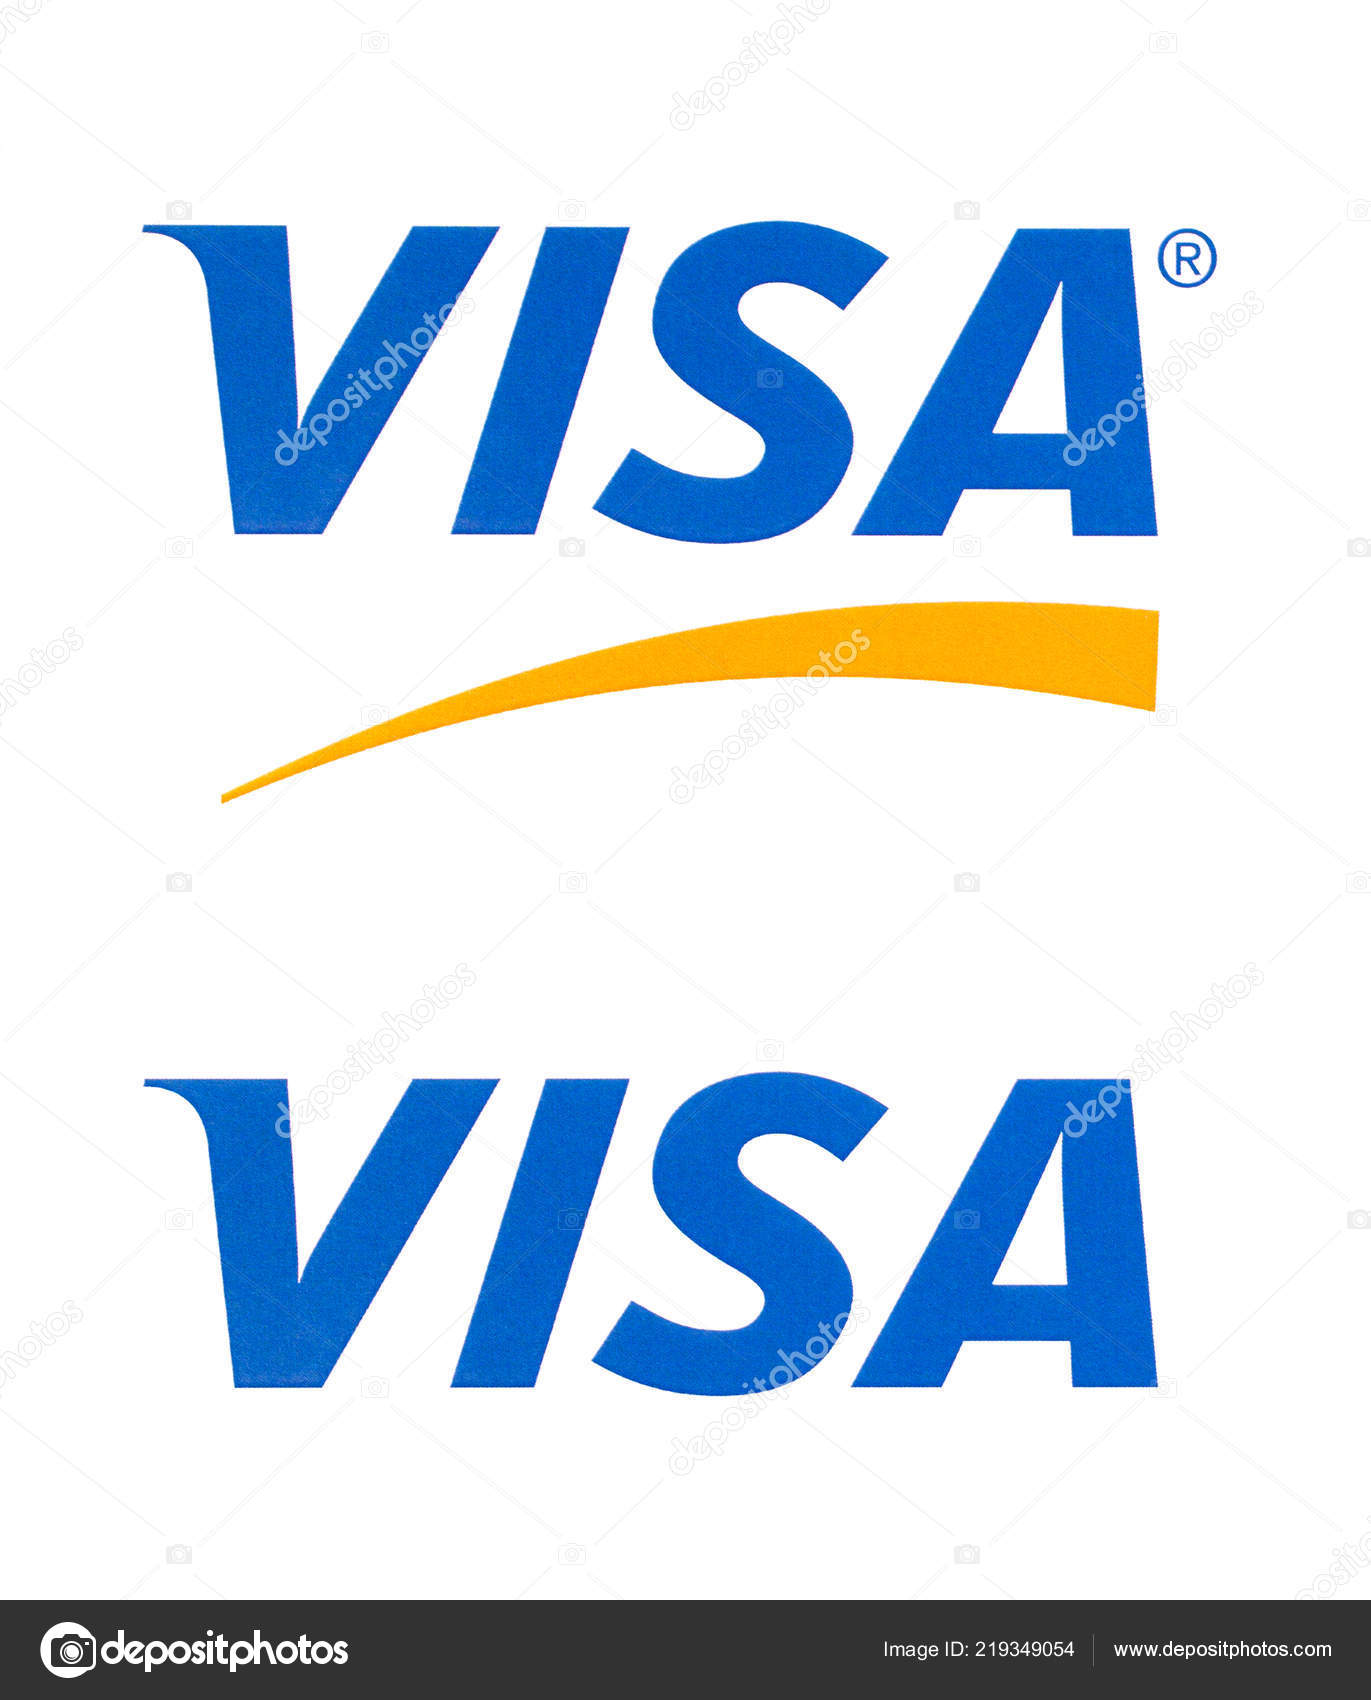 Chisinau, Moldova - September 10, 10: Visa logo printed on the paper and  placed on white background.Visa - American multinational company providing